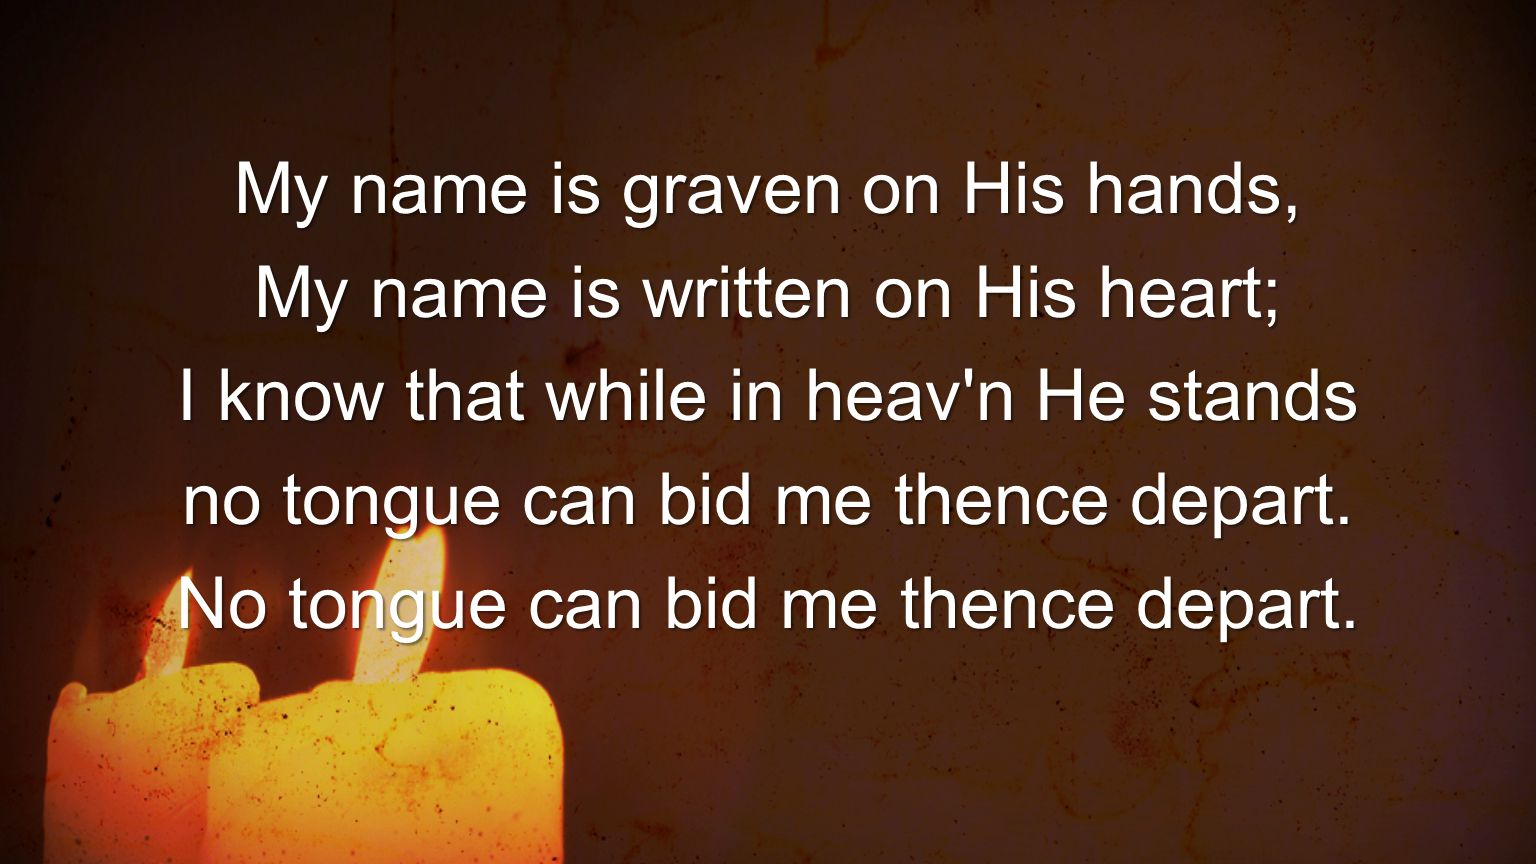 My name is graven on His hands, My name is written on His heart;